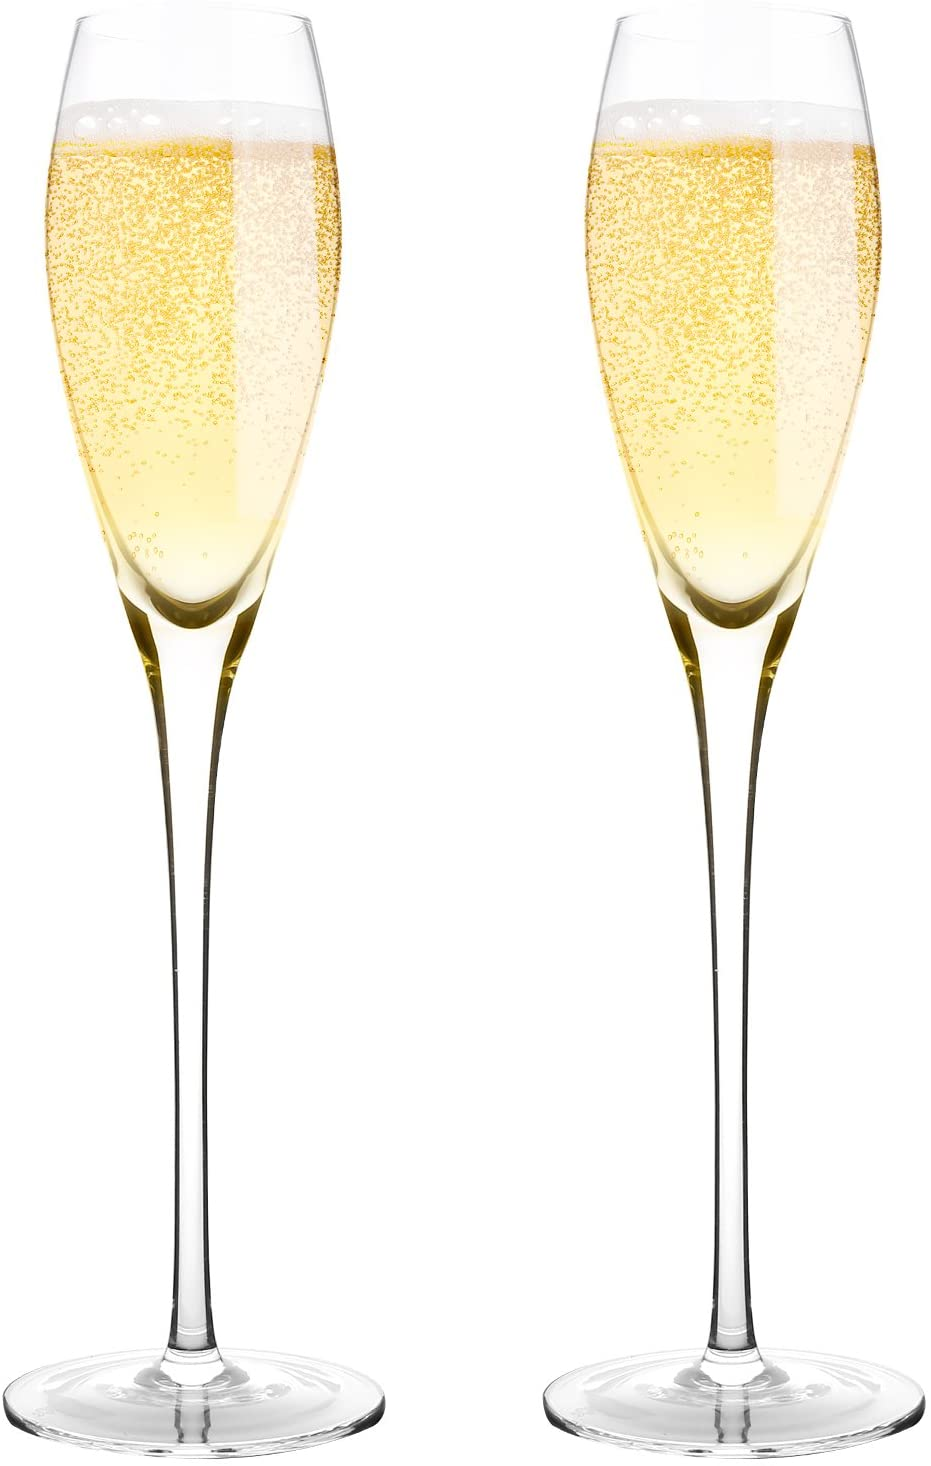 Bella Vino Hand Blown Crystal Champagne Flutes - Bella Vino Standard Champagne Glasses Made from 100% Lead Free Premium Crystal Glass,Perfect for Any Occasion,Great Gift, 10.5